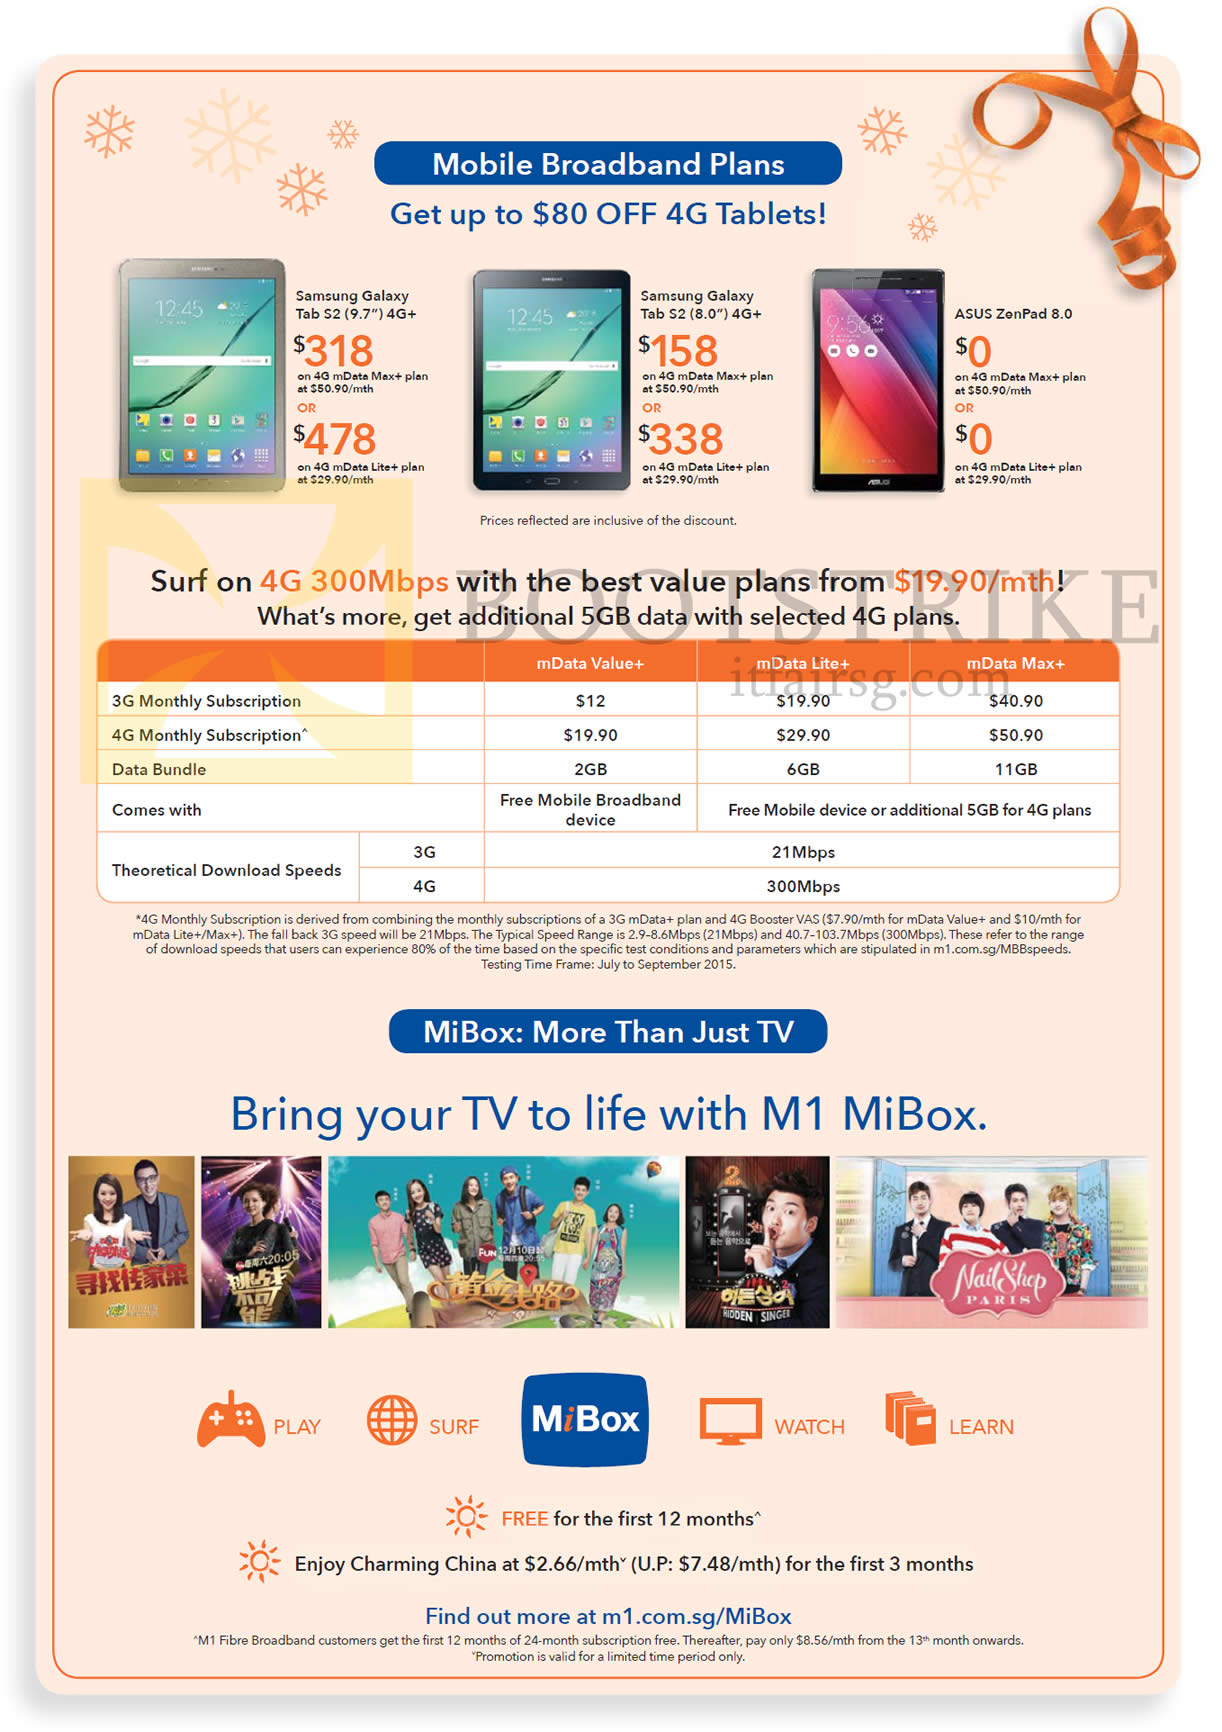 SITEX 2015 price list image brochure of M1 Mobile Samsung Galaxy Tab S2, ASUS ZenPad, MData Plans